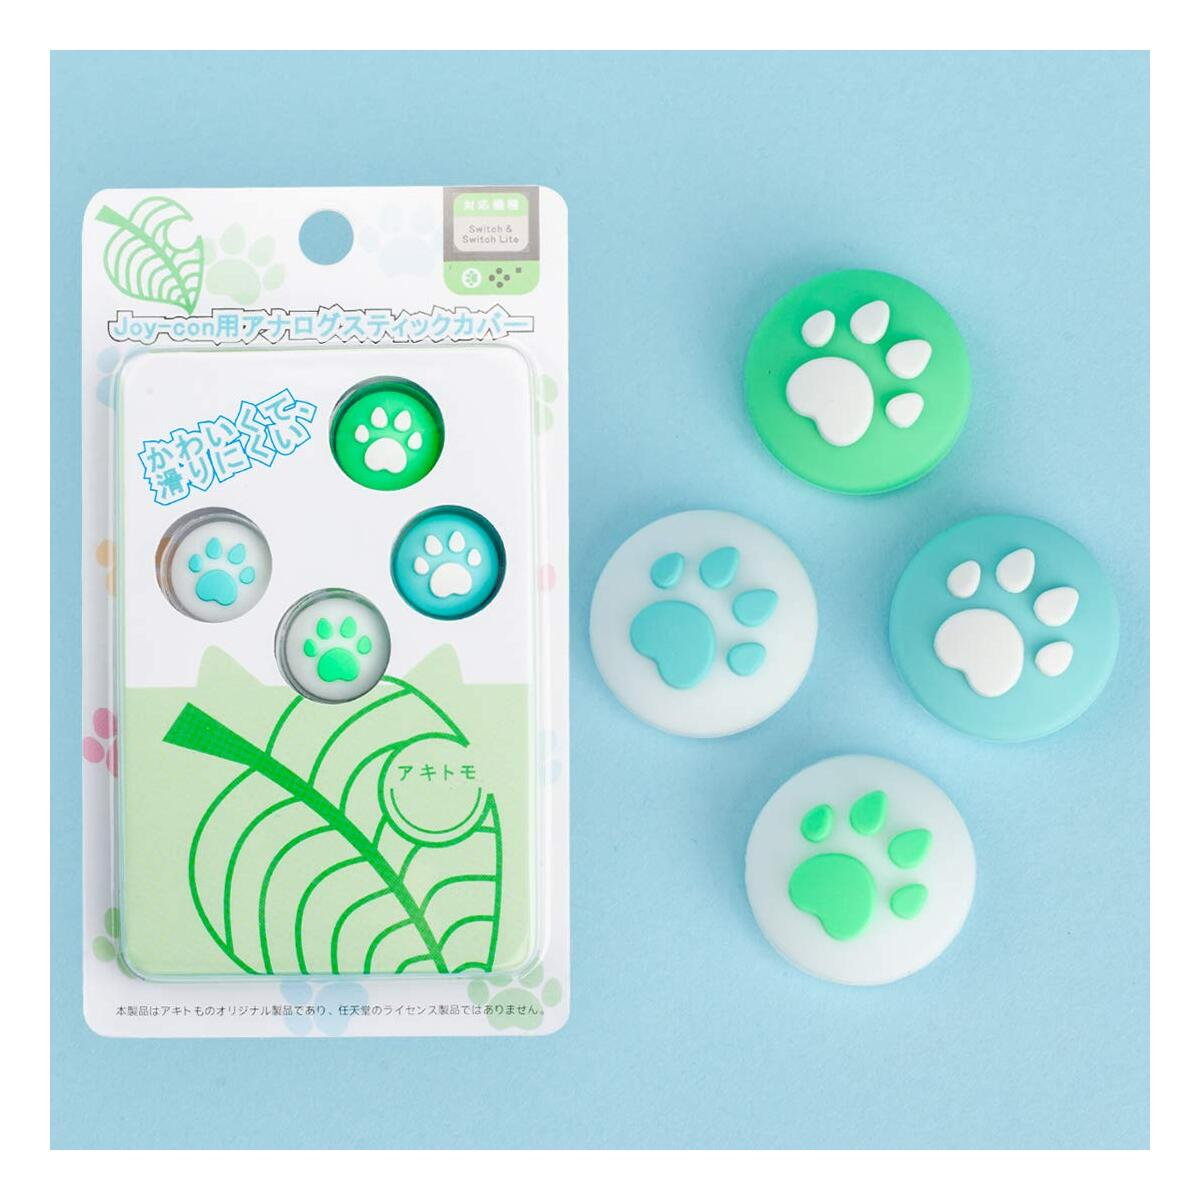 Cat Claw Design Thumb Grip Caps, Joystick Cap for Nintendo Switch & Lite, Soft Silicone Cover for Joy-Con Controller (Blue & Green)